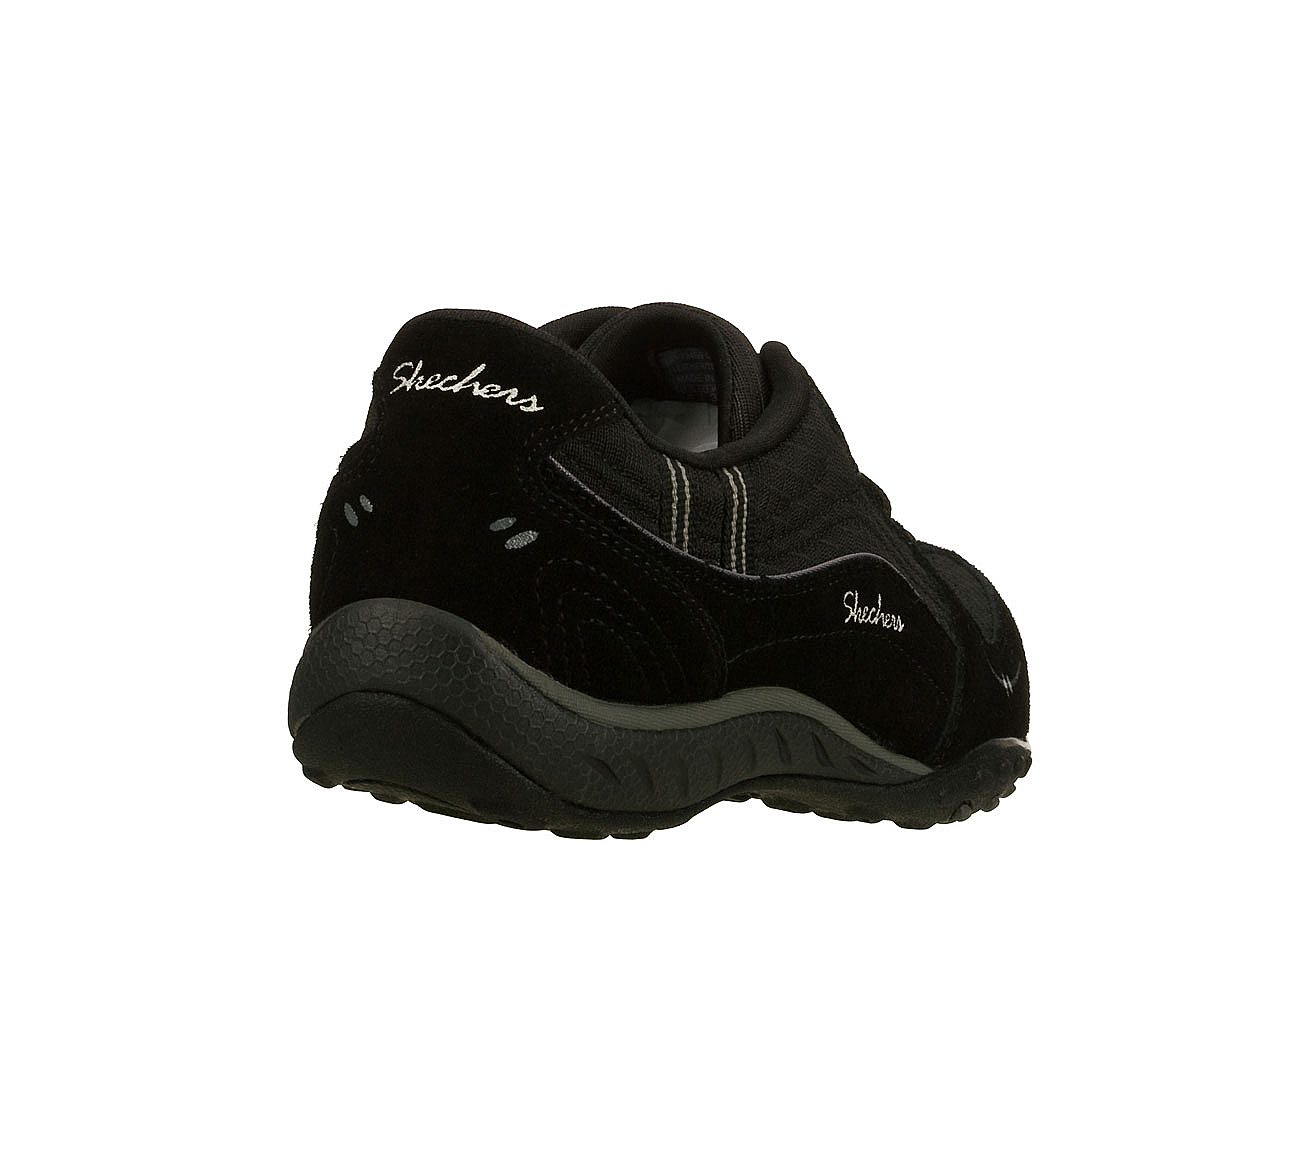 8ed79ba0621b3 Buy SKECHERS Relaxed Fit: Breathe Easy - Just Relax Active Shoes ...